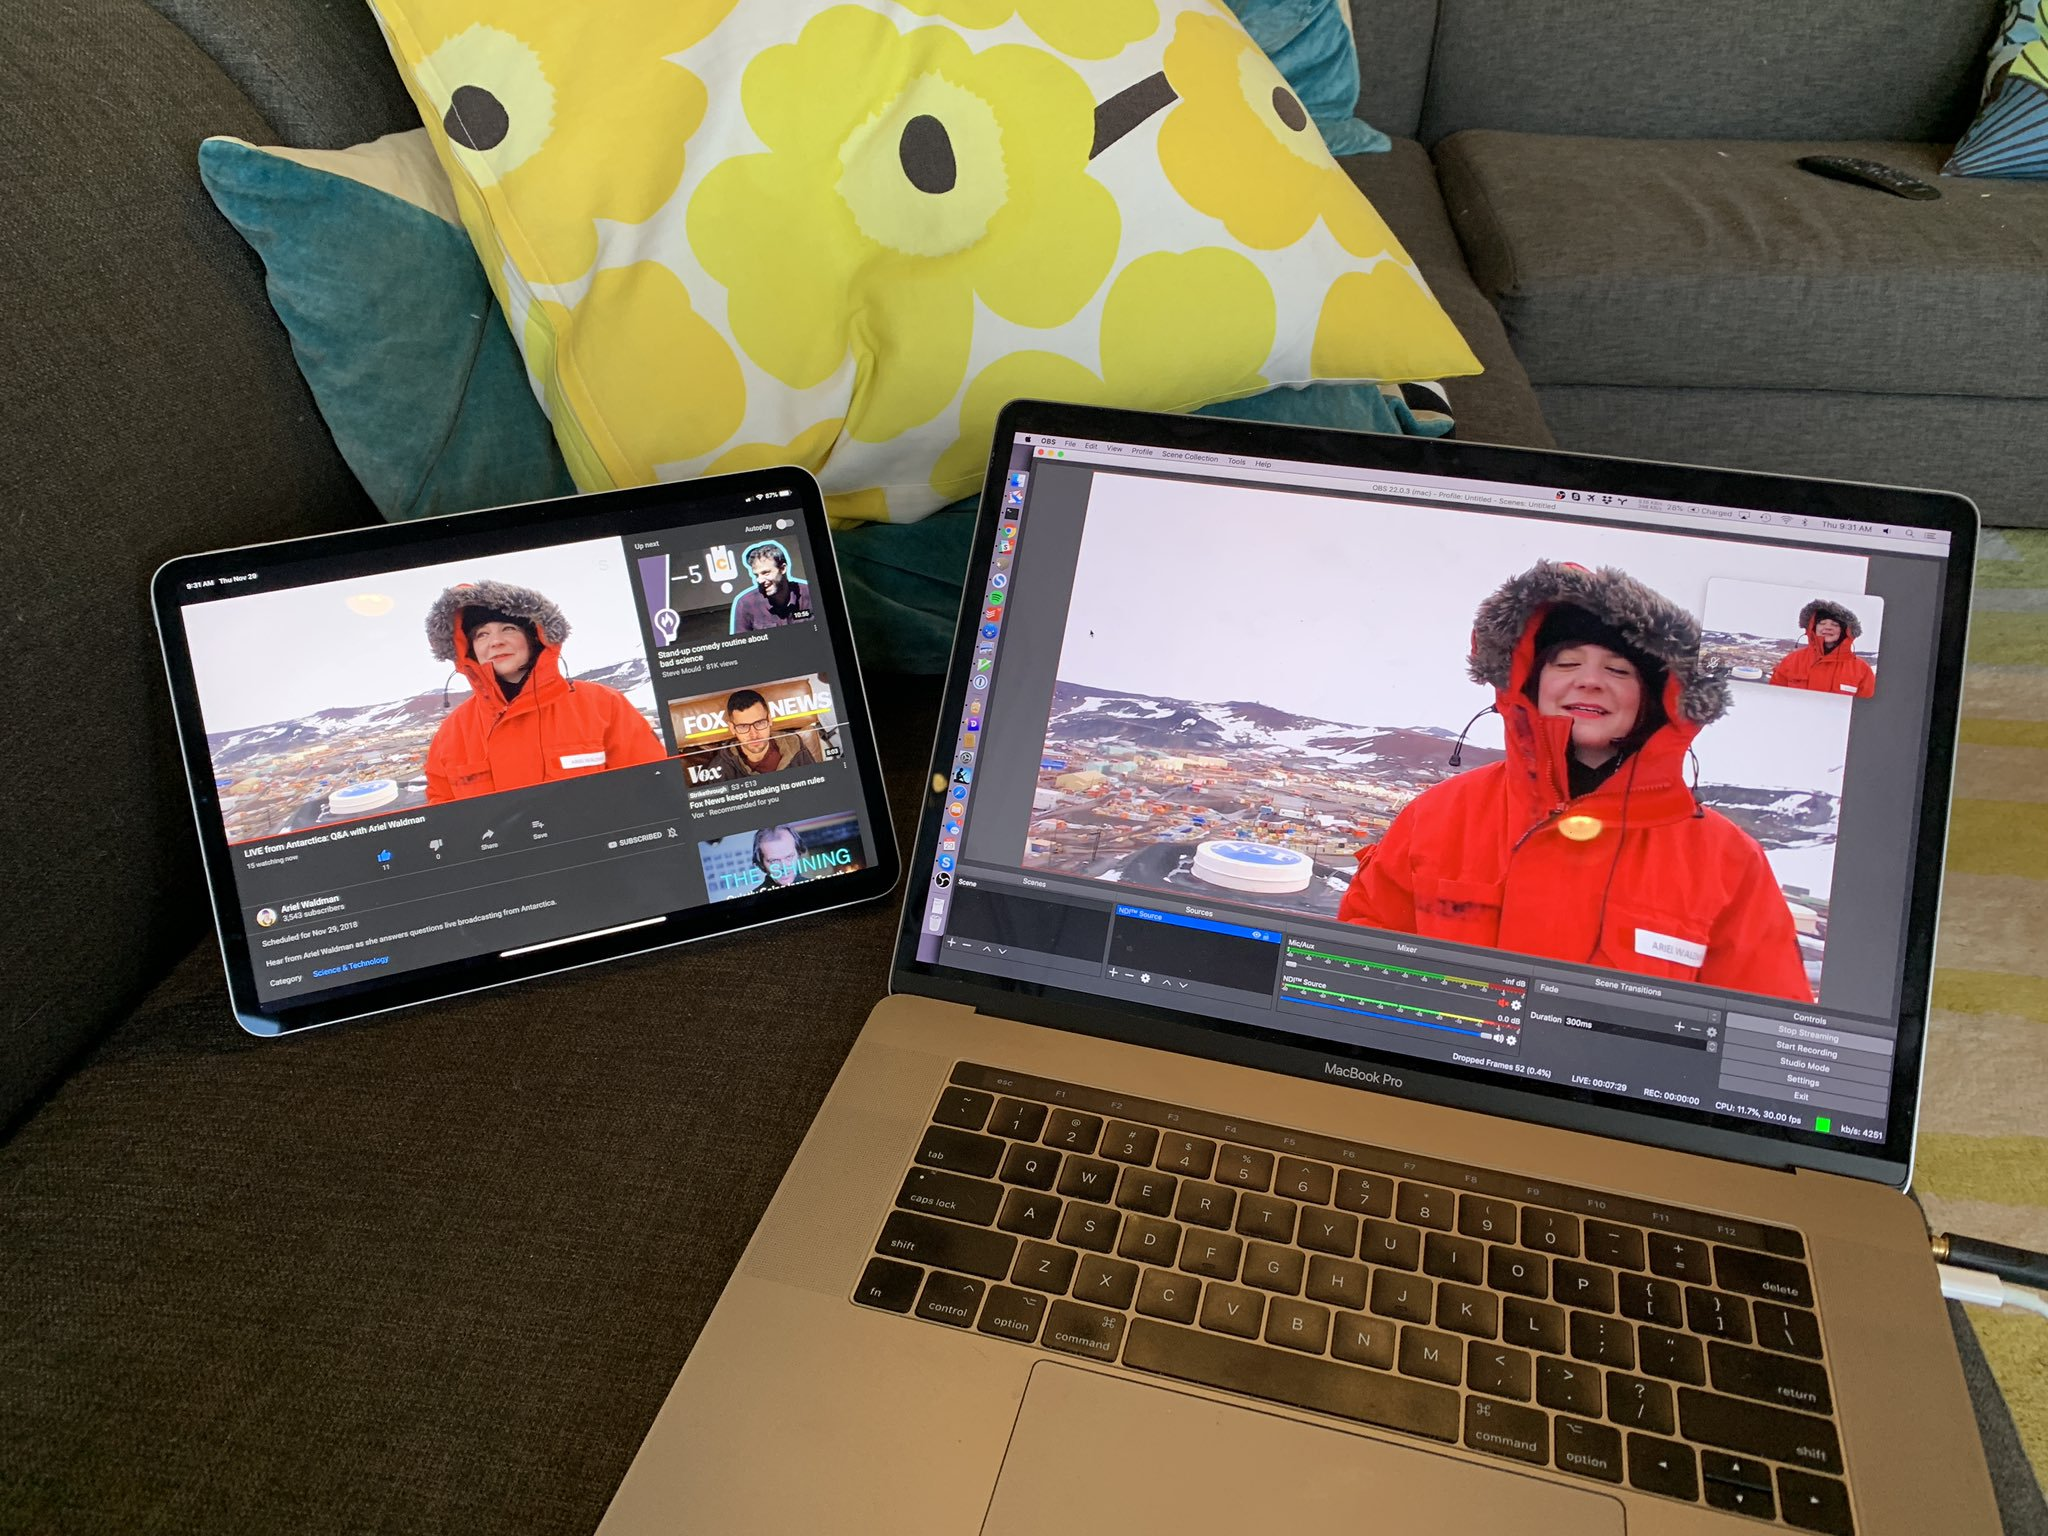 How to stream to YouTube Live from a Skype call :: Hackdiary